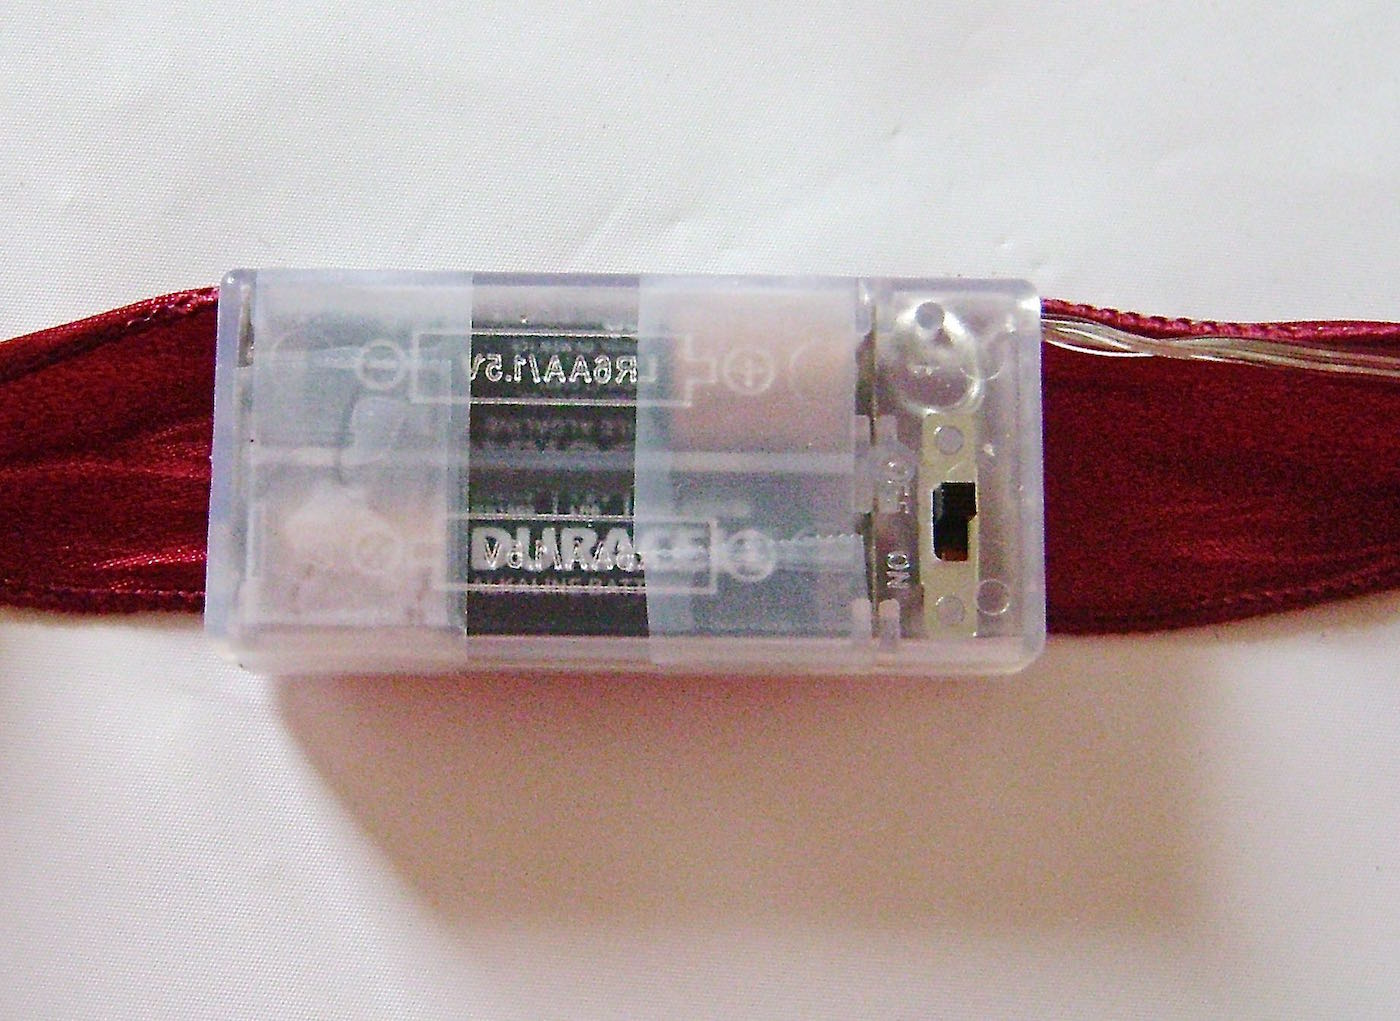 step 6 - Insert batteries into the plastic case and tape the light string battery pack to the center of your ribbon.